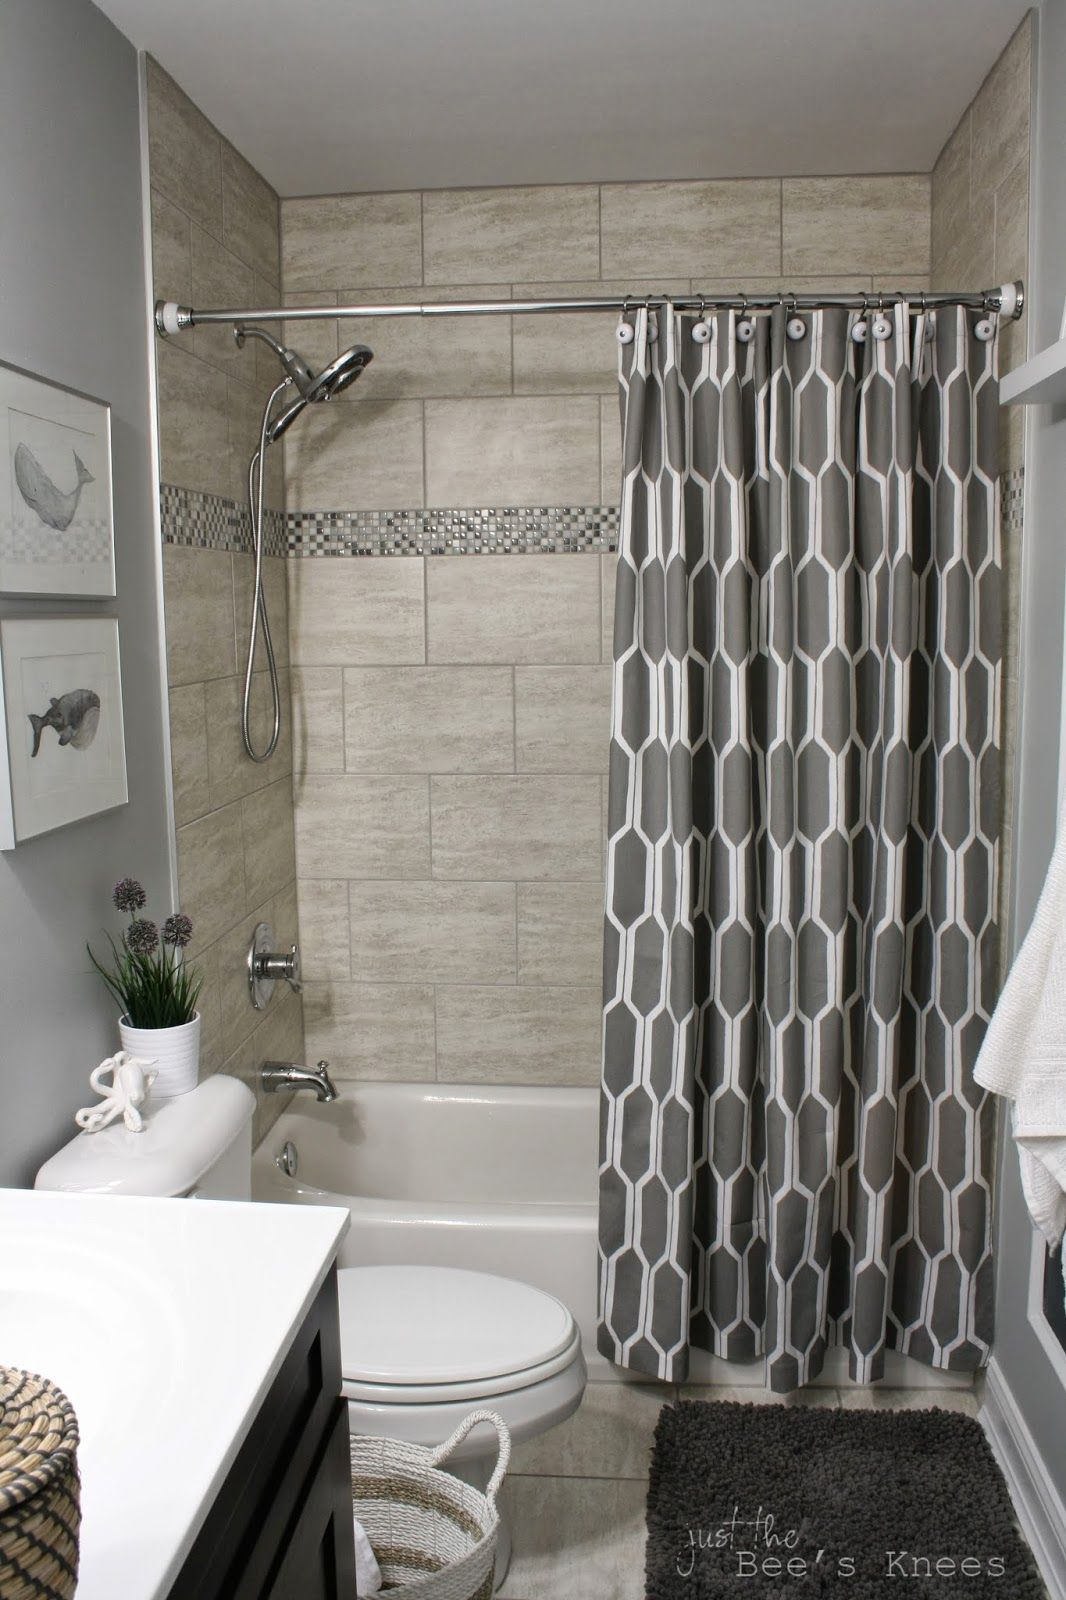 Honeycomb Shower Curtain From West Elm Bathroom Tub Shower Small Bathroom Remodel Bathroom Tub Shower Combo